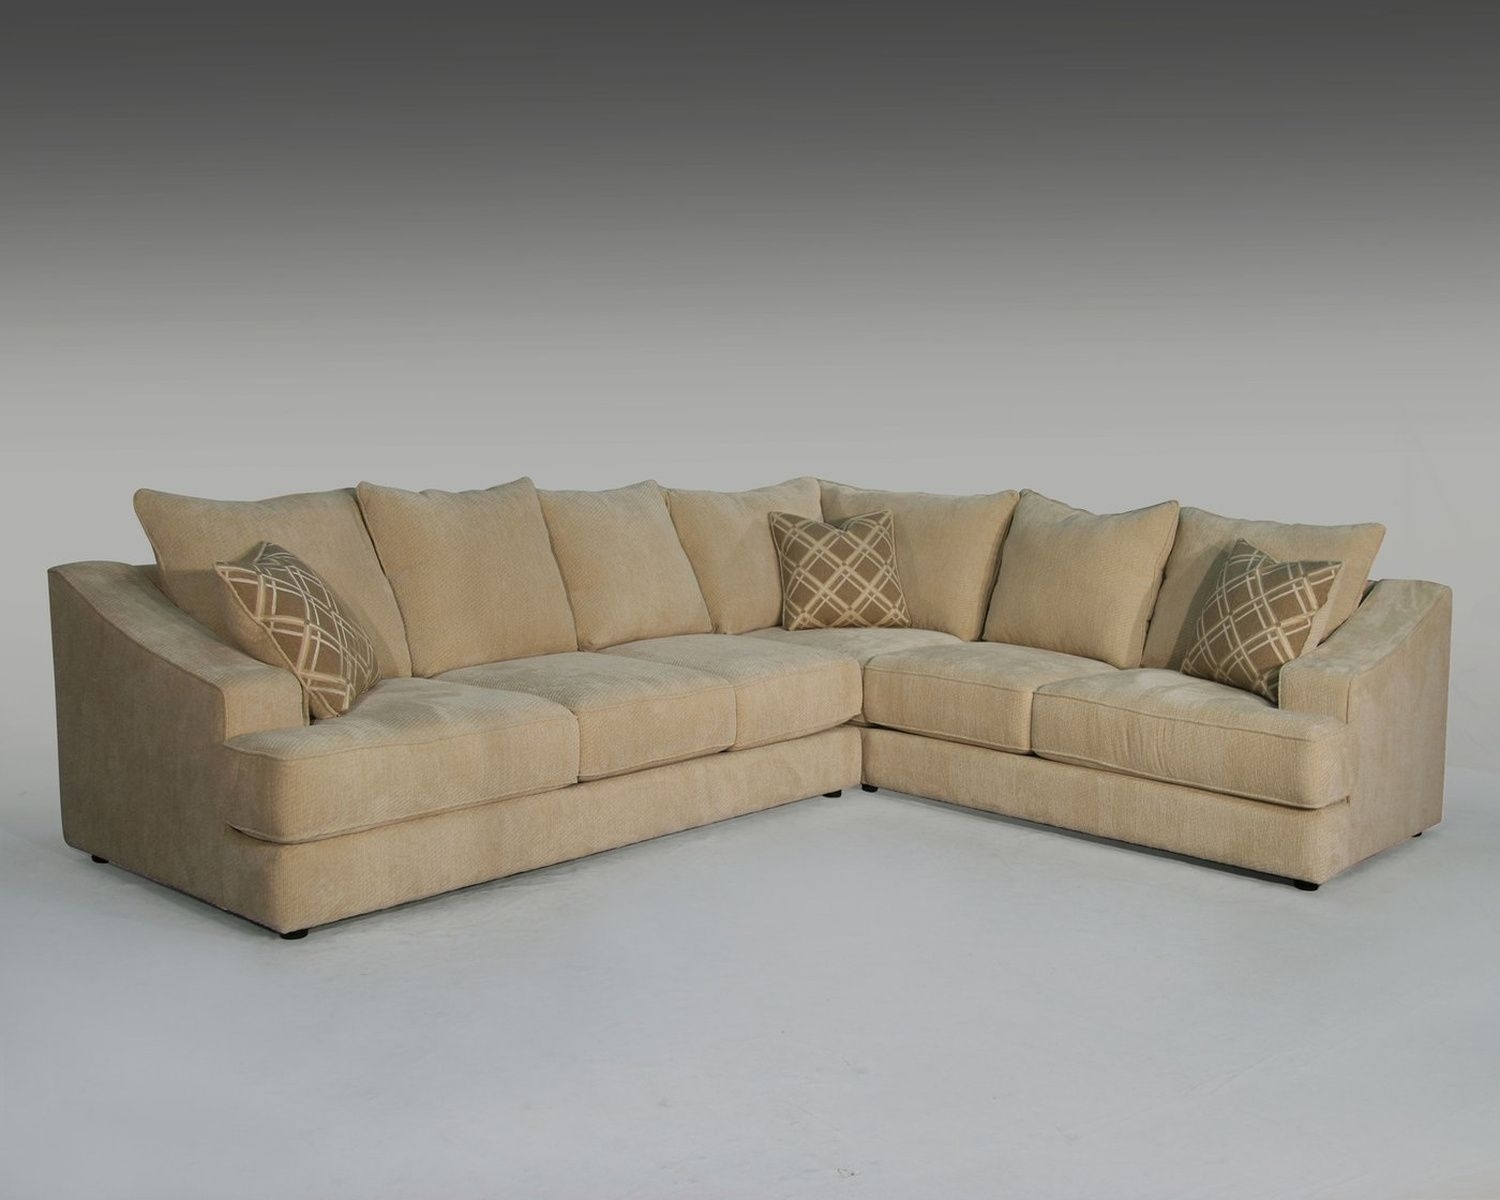 Nantahala Faux Leather Reclining Sectional With 2 Consoles Throughout Aspen 2 Piece Sectionals With Raf Chaise (Image 21 of 25)